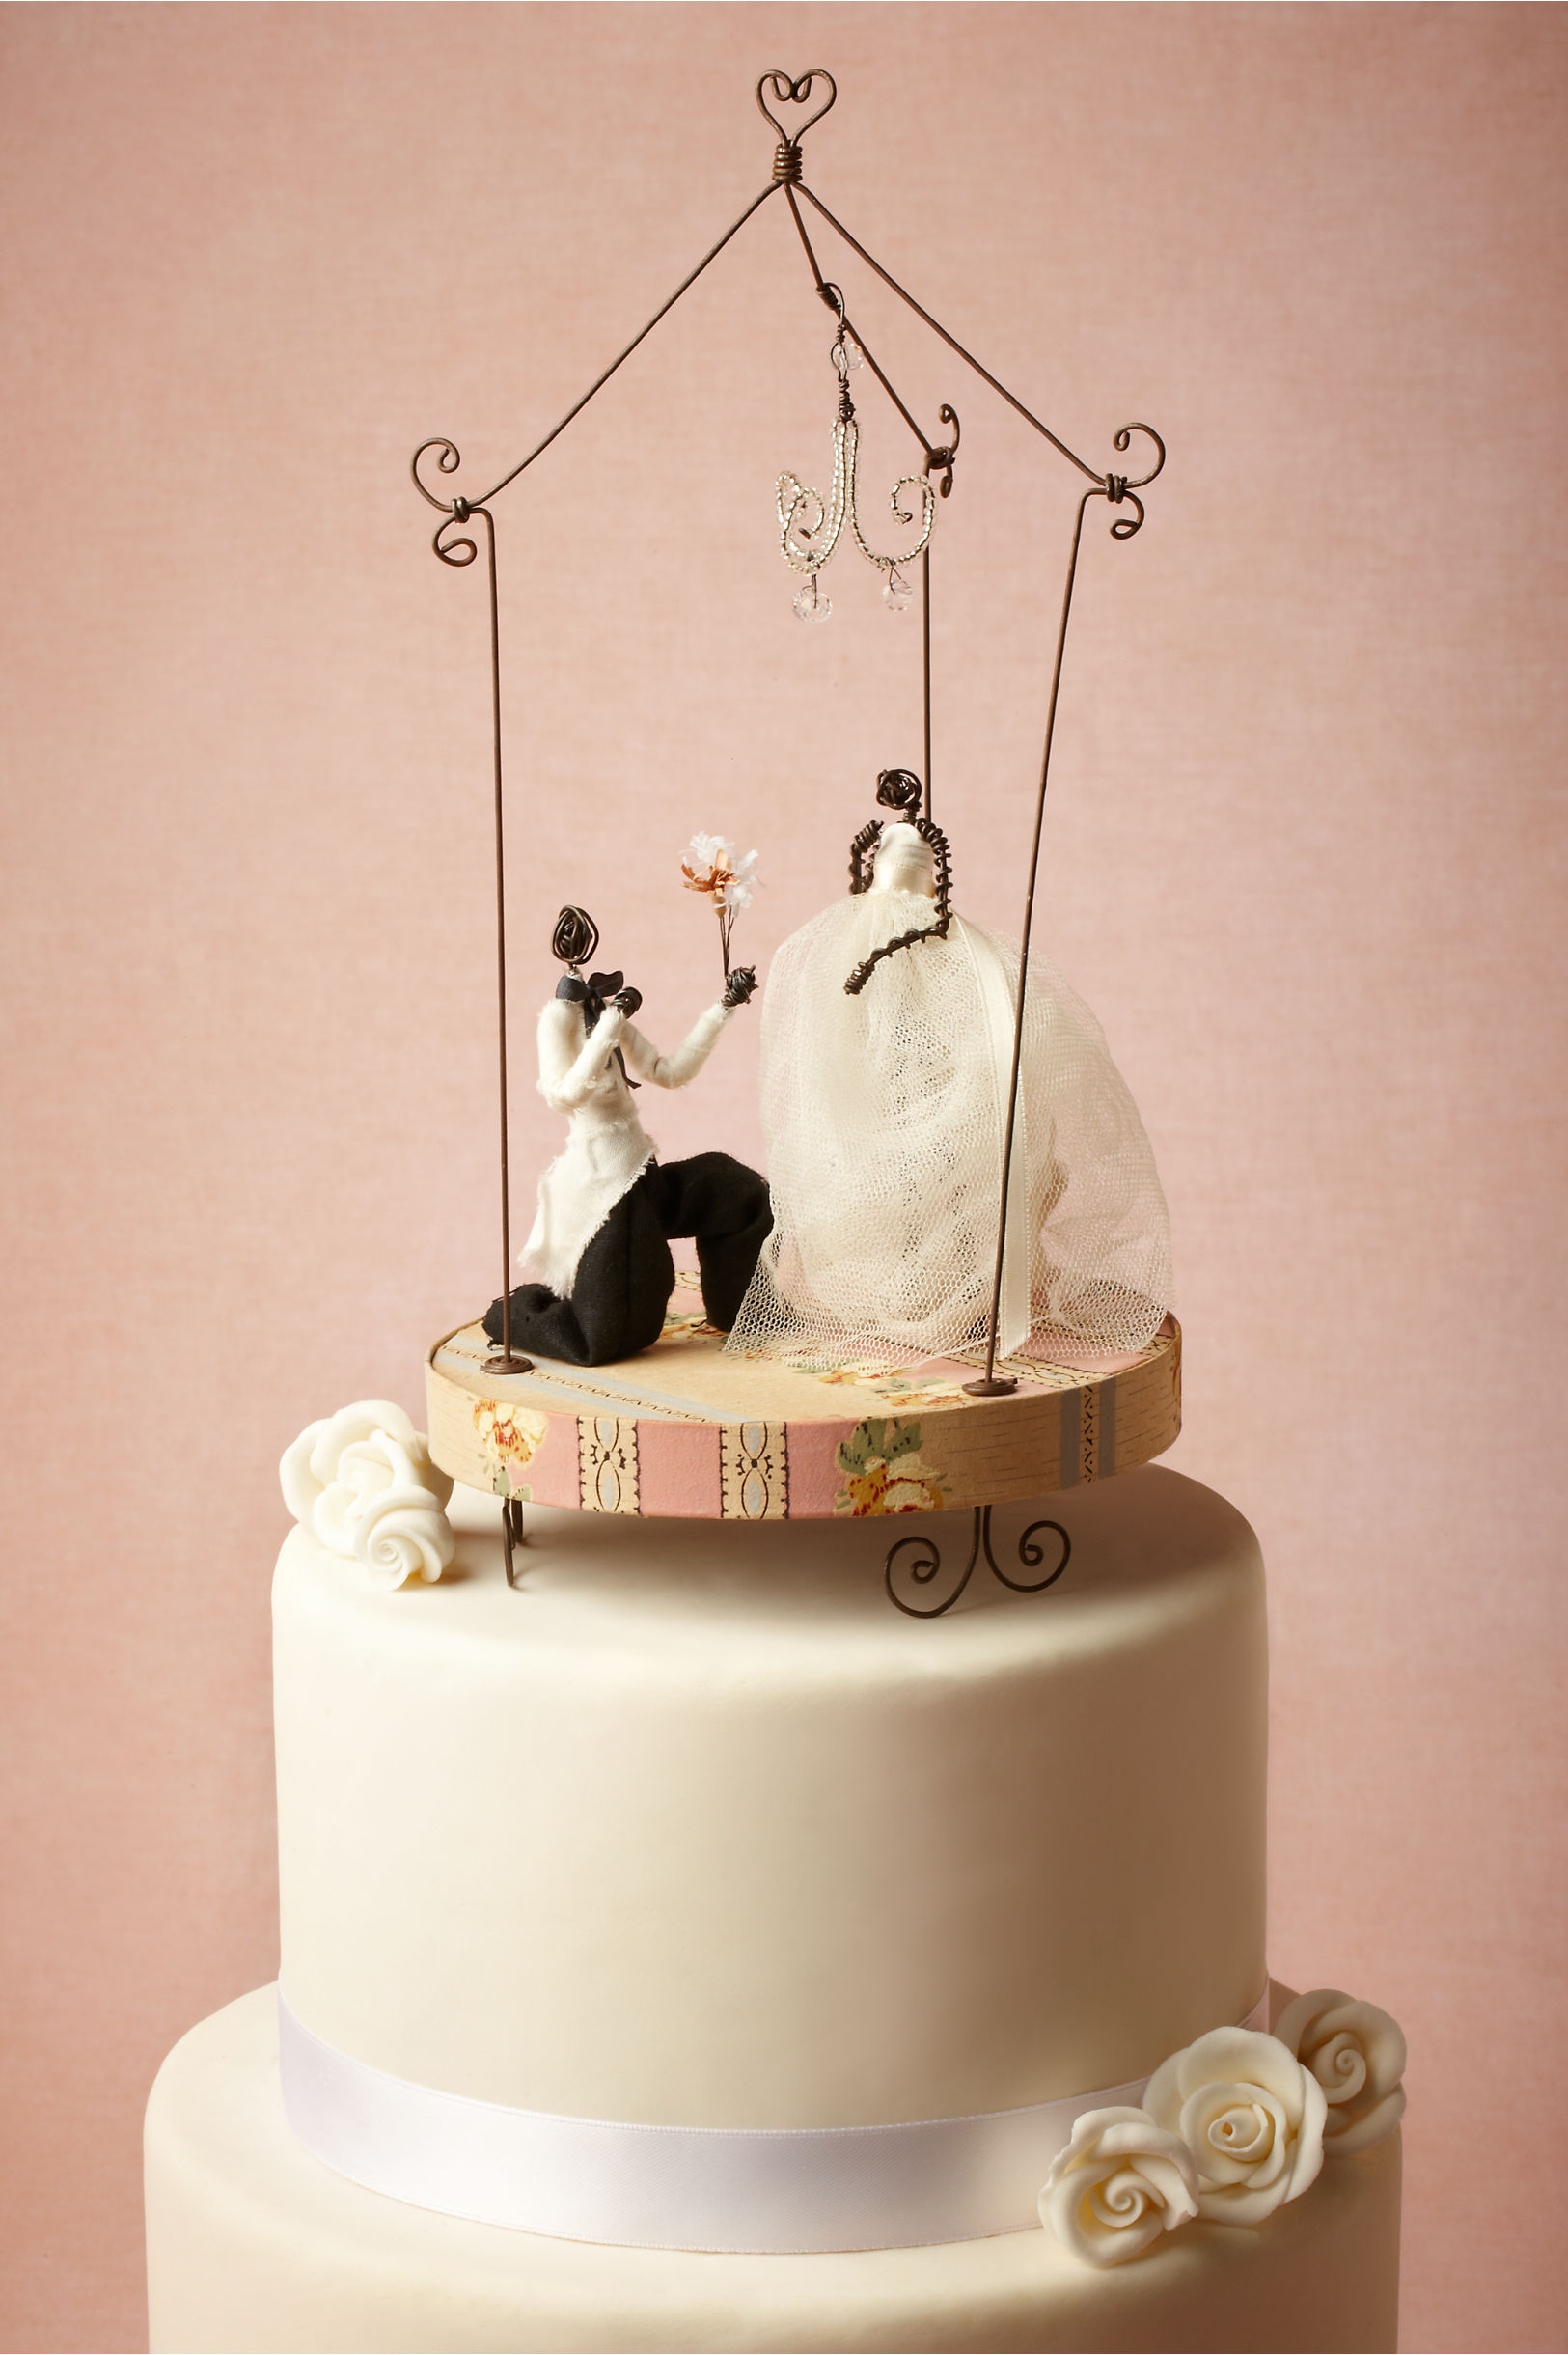 Romantic-handmade-wedding-cake-topper-by-bhldn.original